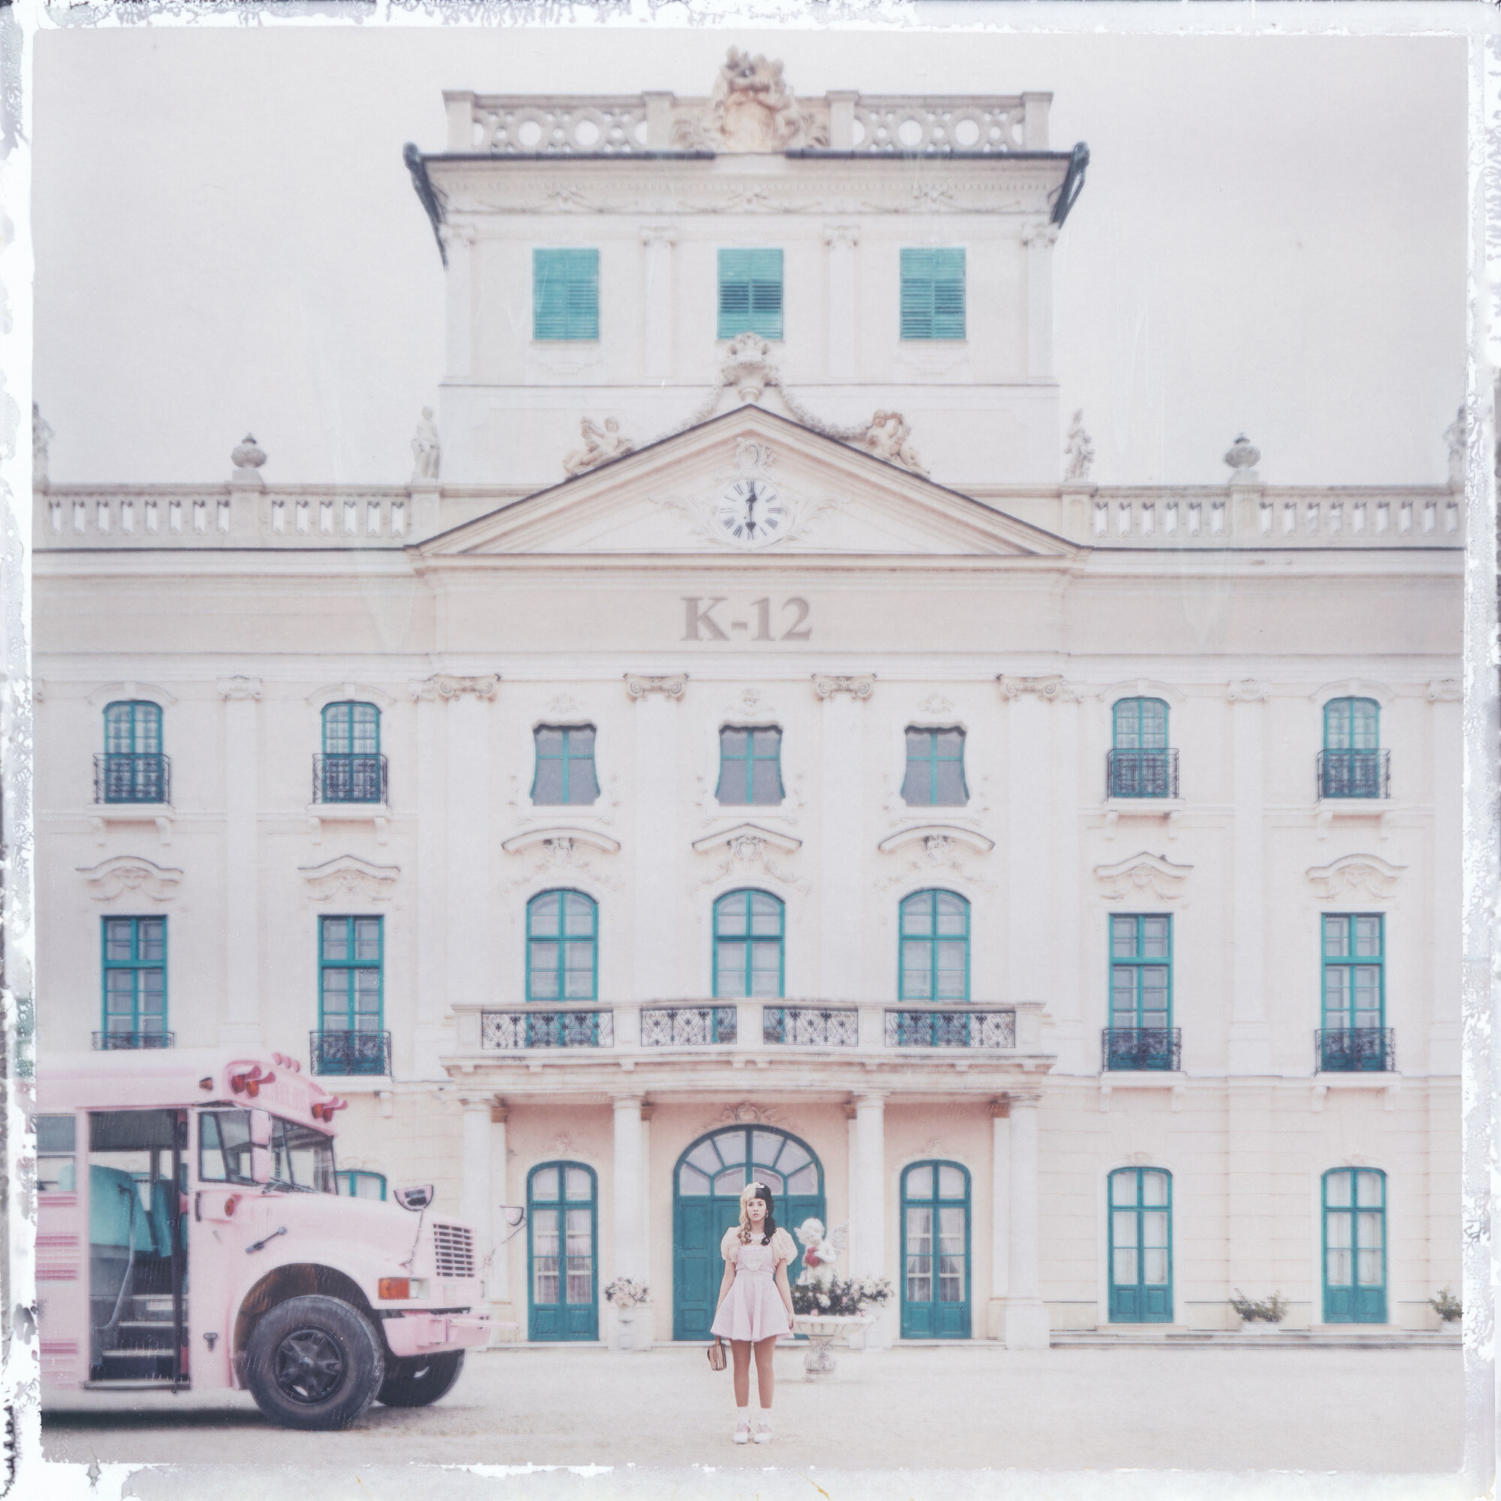 Caleb Audia reviews Melanie Martinez's sophomore album,